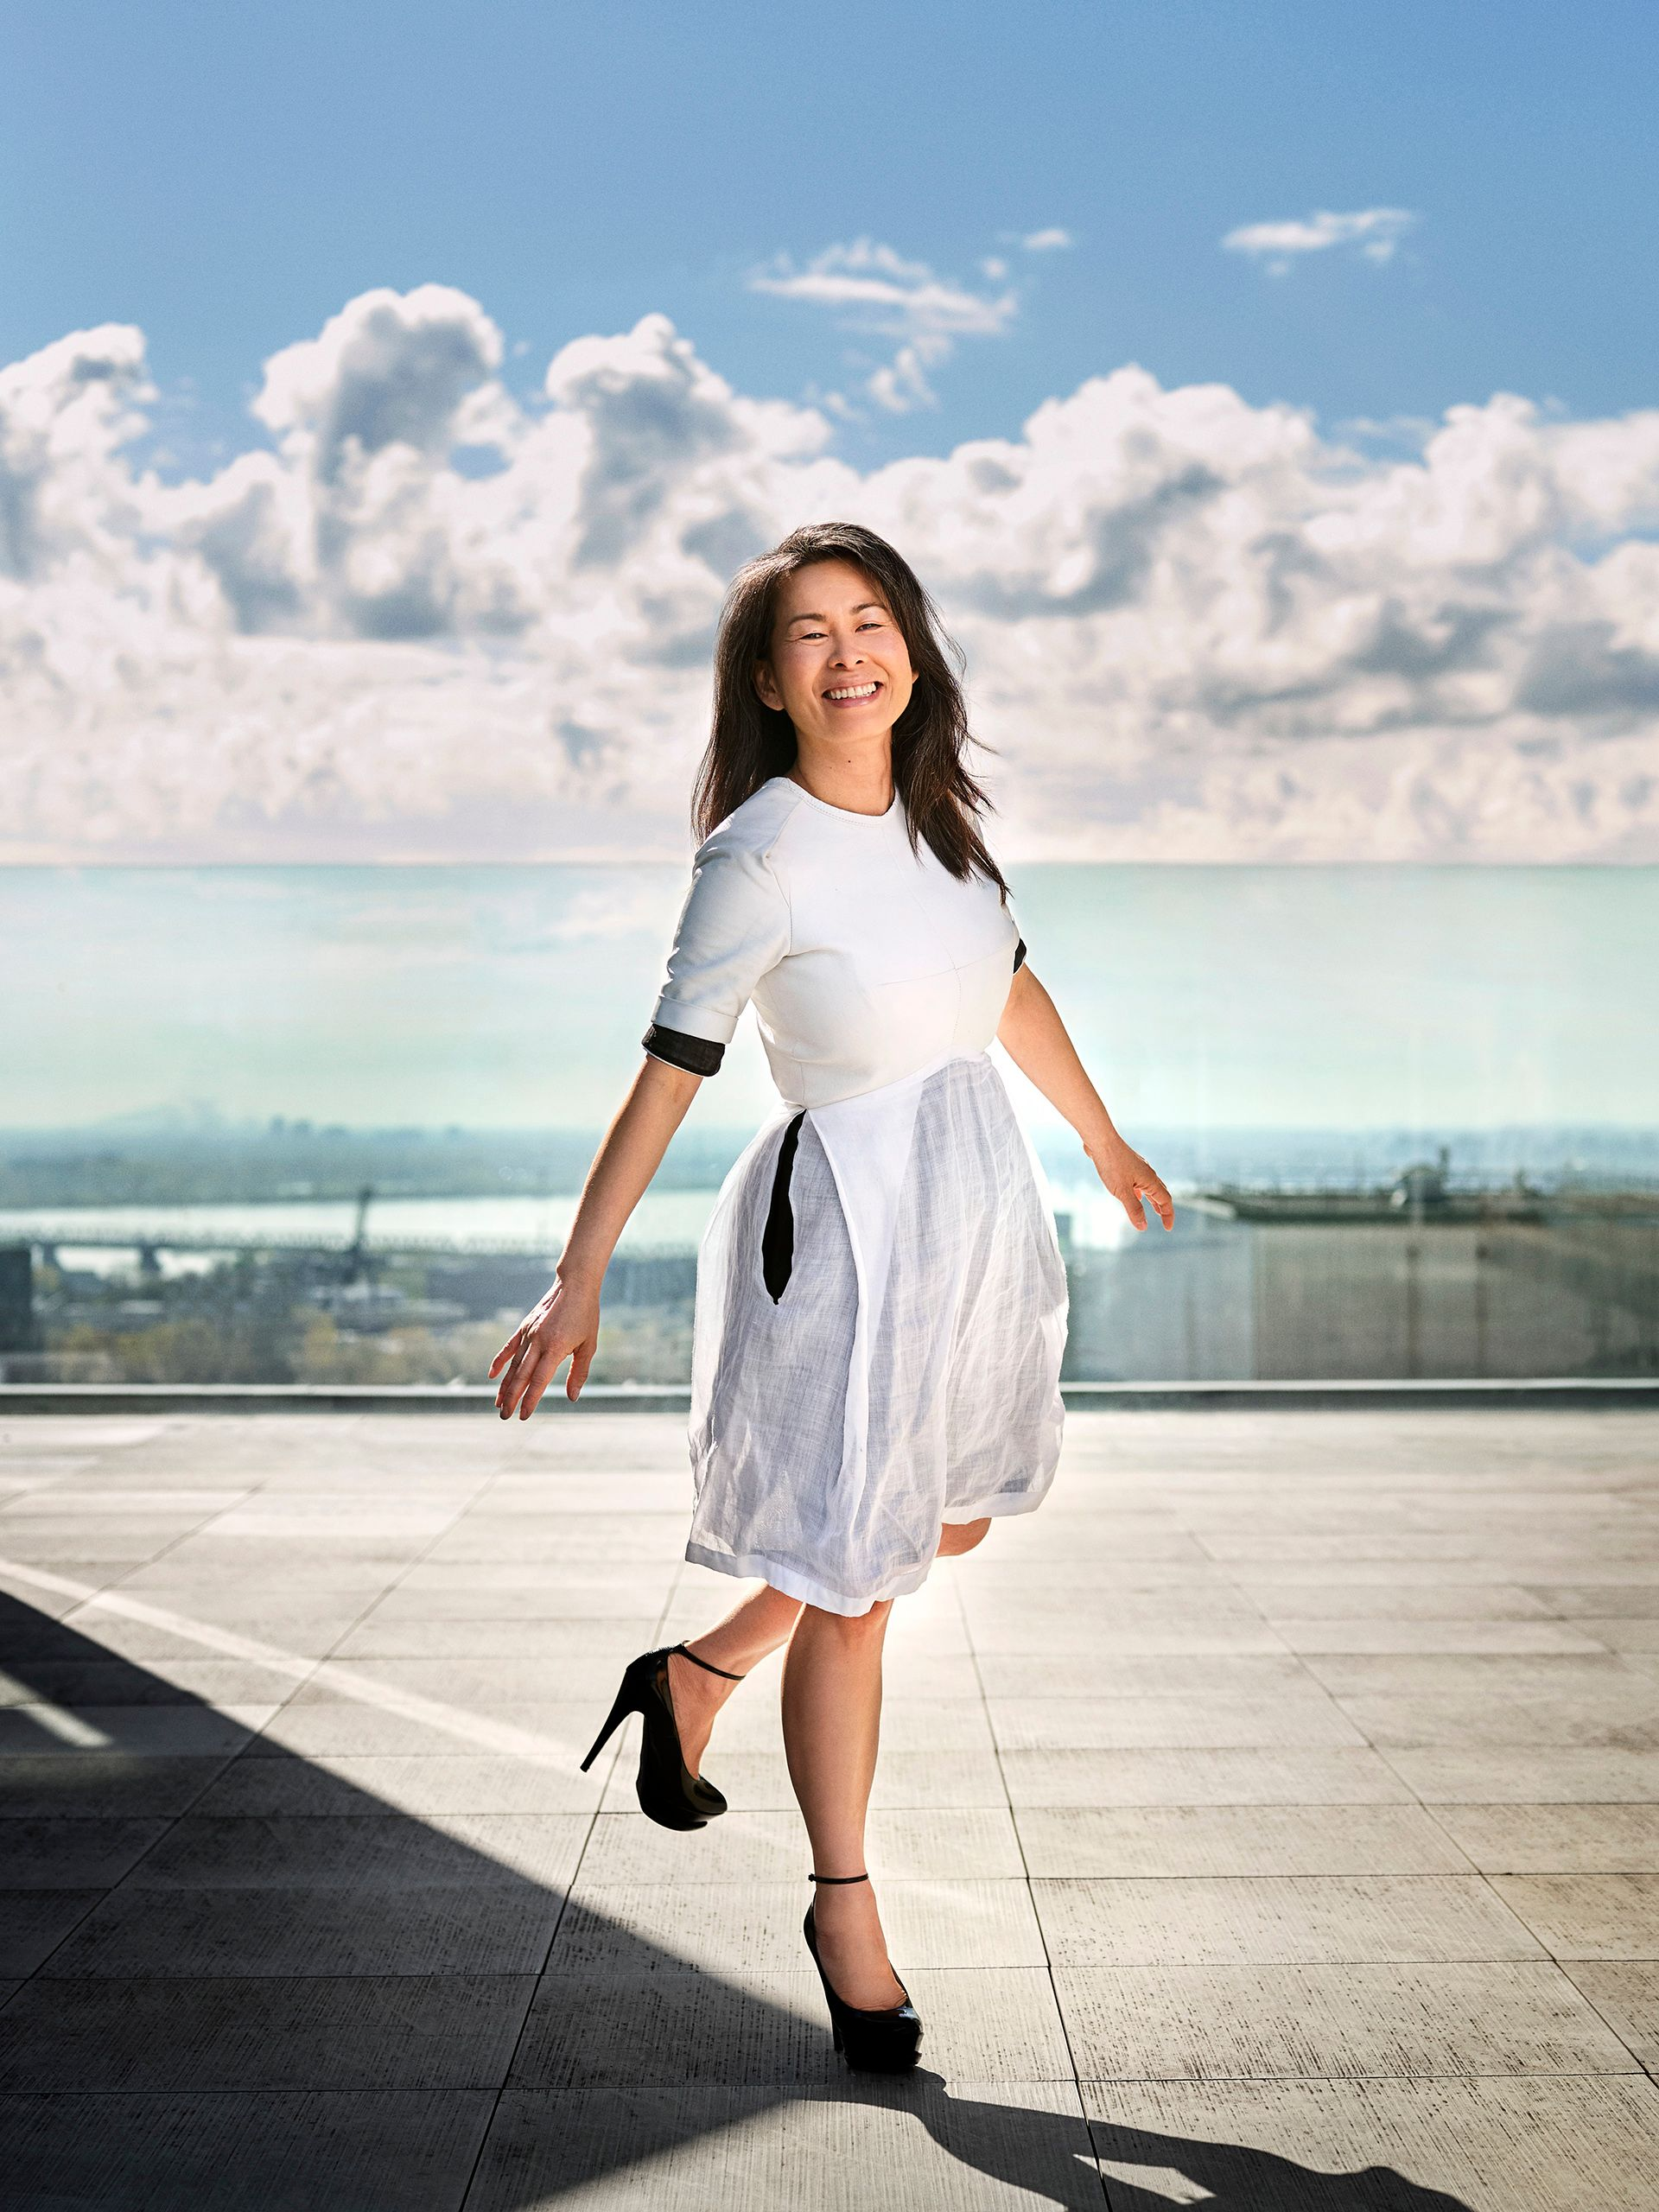 Full body picture of author Kim Thuy walking with energy, almost jumping. She is smiling and wears a white dress, stiletto black shoes.